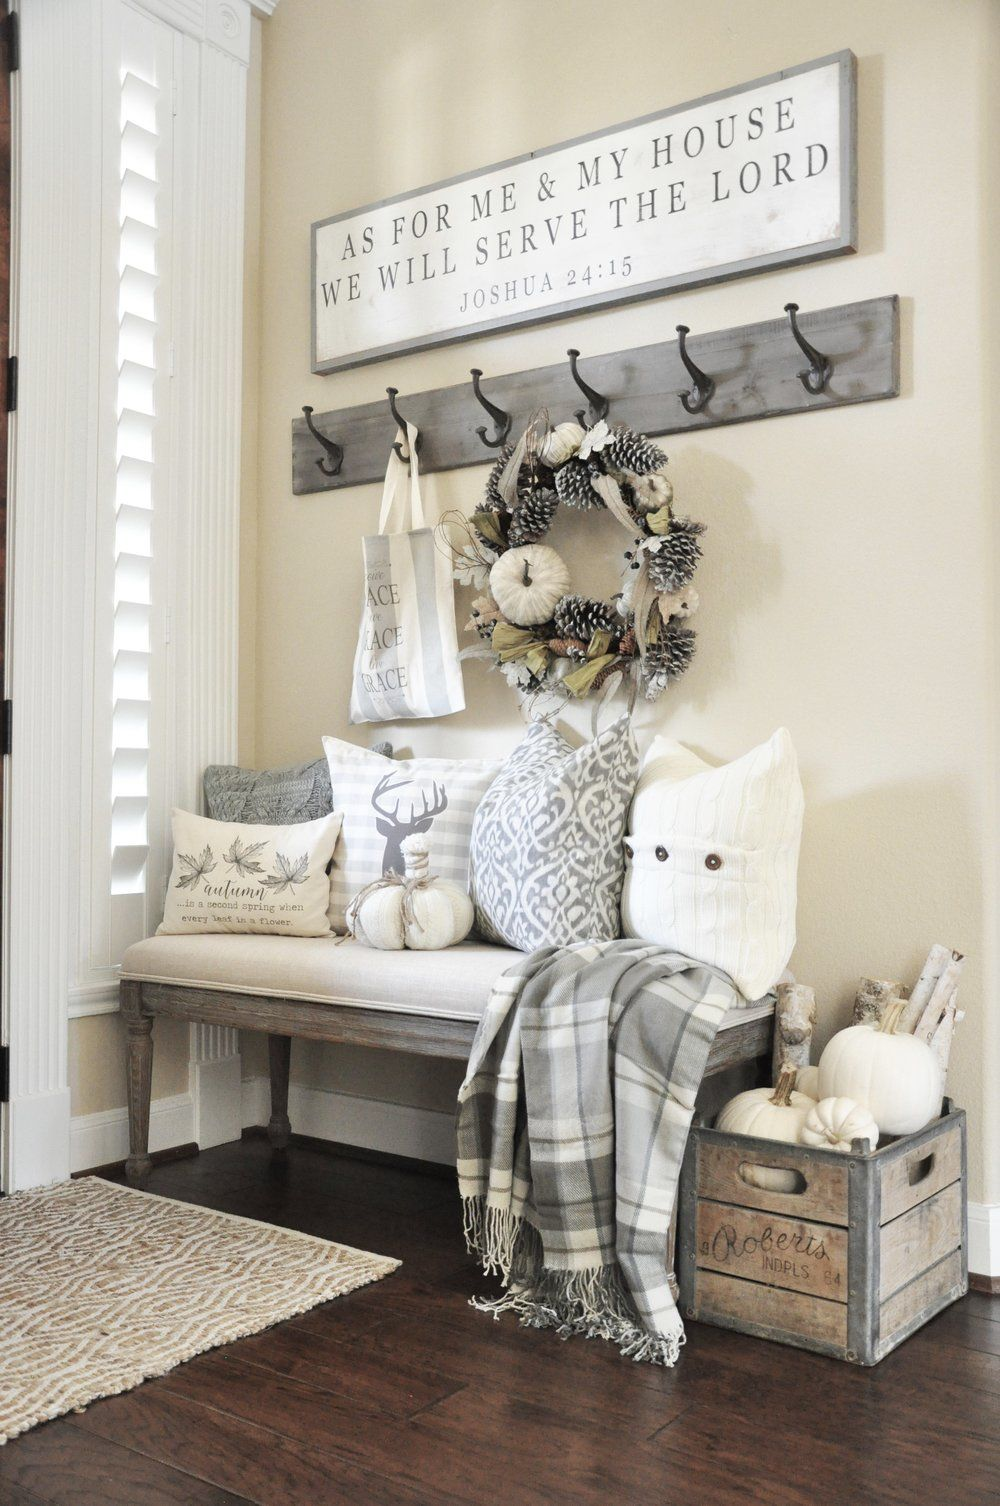 59 Entryway Bench Ideas 2021 Useful And Beautiful